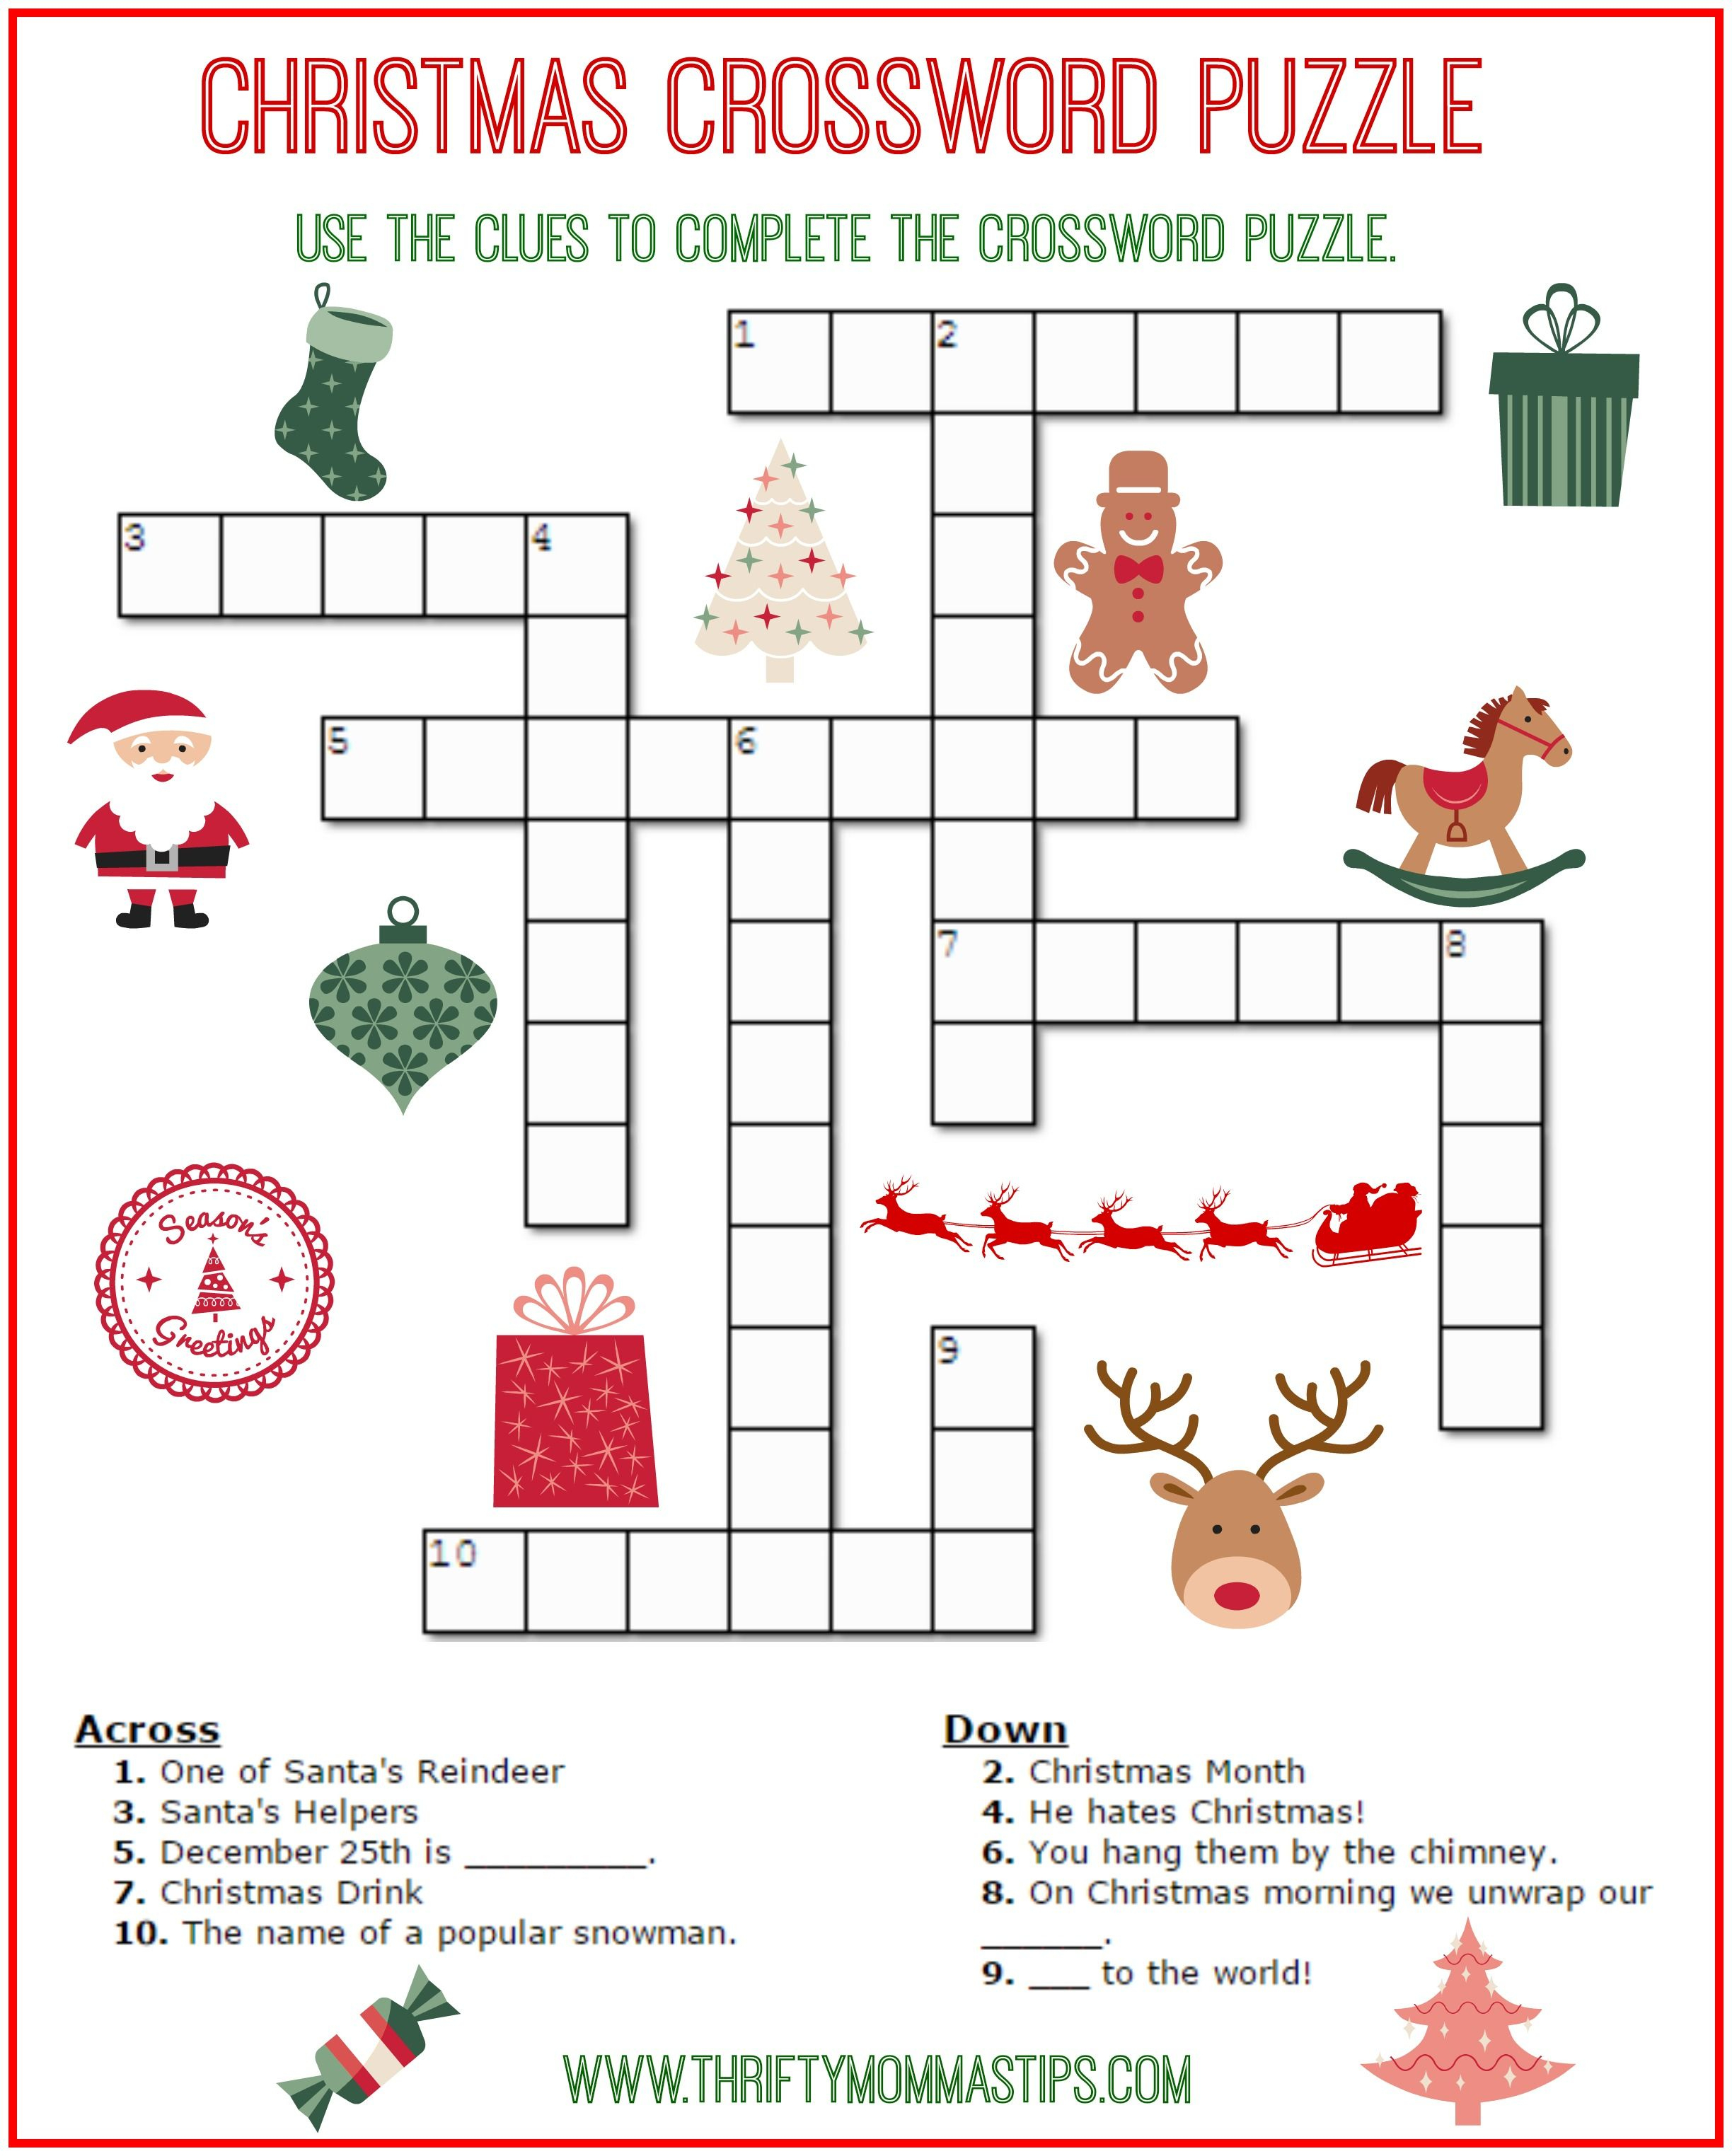 Christmas Crossword Puzzle Printable Thrifty Mommas Tips Uirq7Lrq - Printable Christmas Crossword Puzzles With Answers